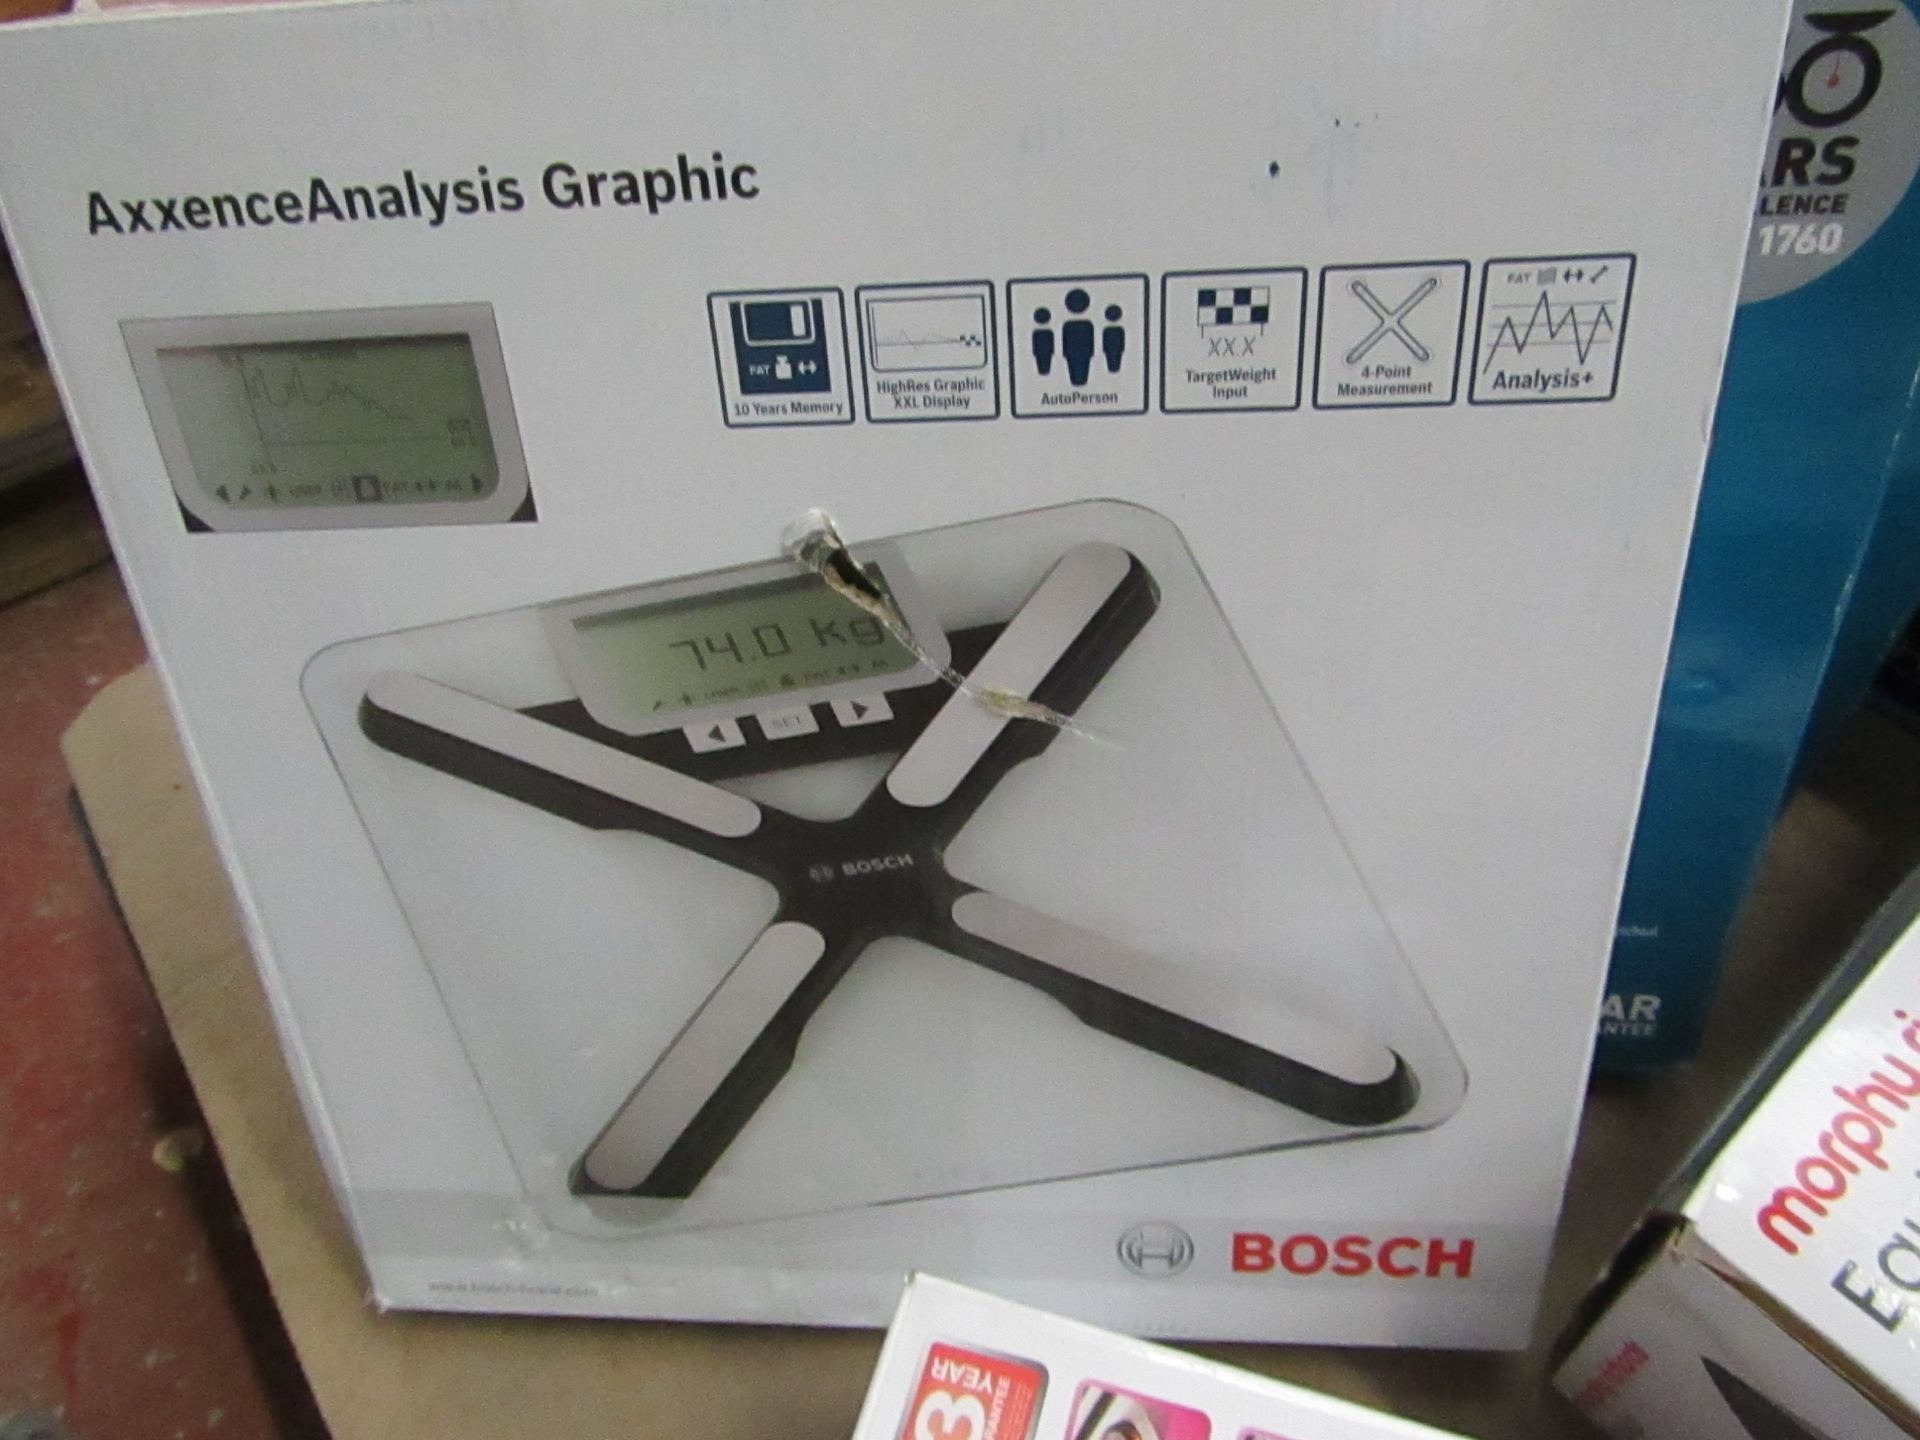 Lot 79 - Bosch graphic analysis scales, untested and boxed.